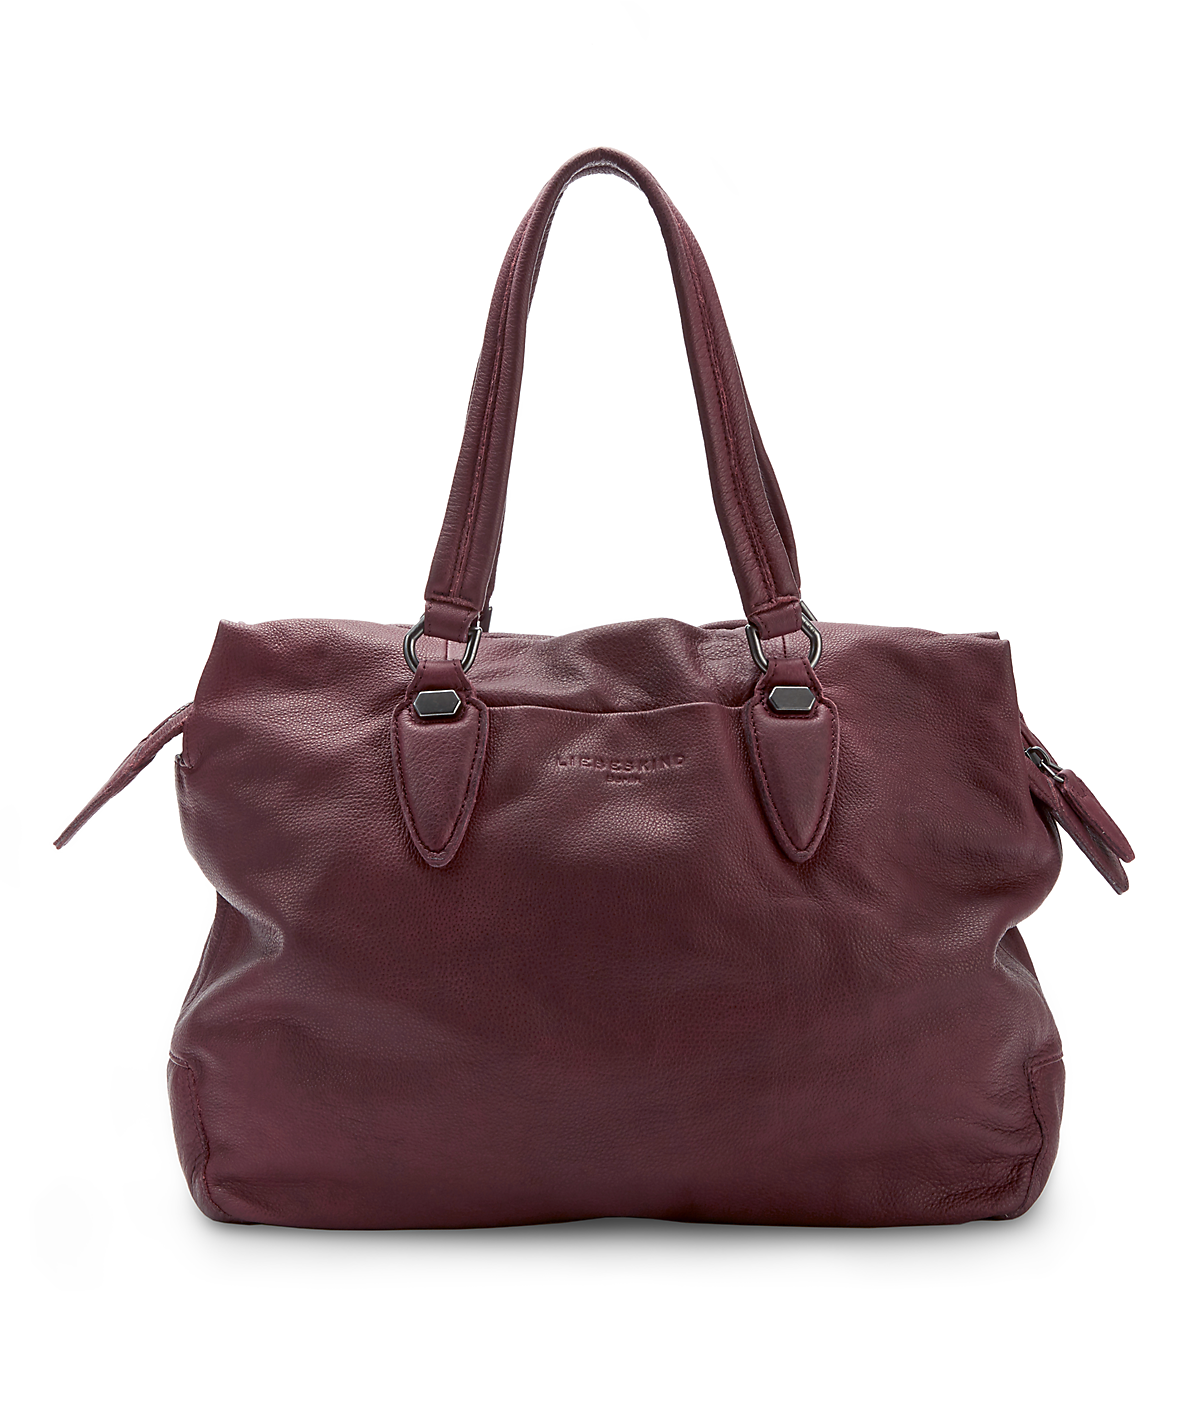 YamagataW handbag from liebeskind